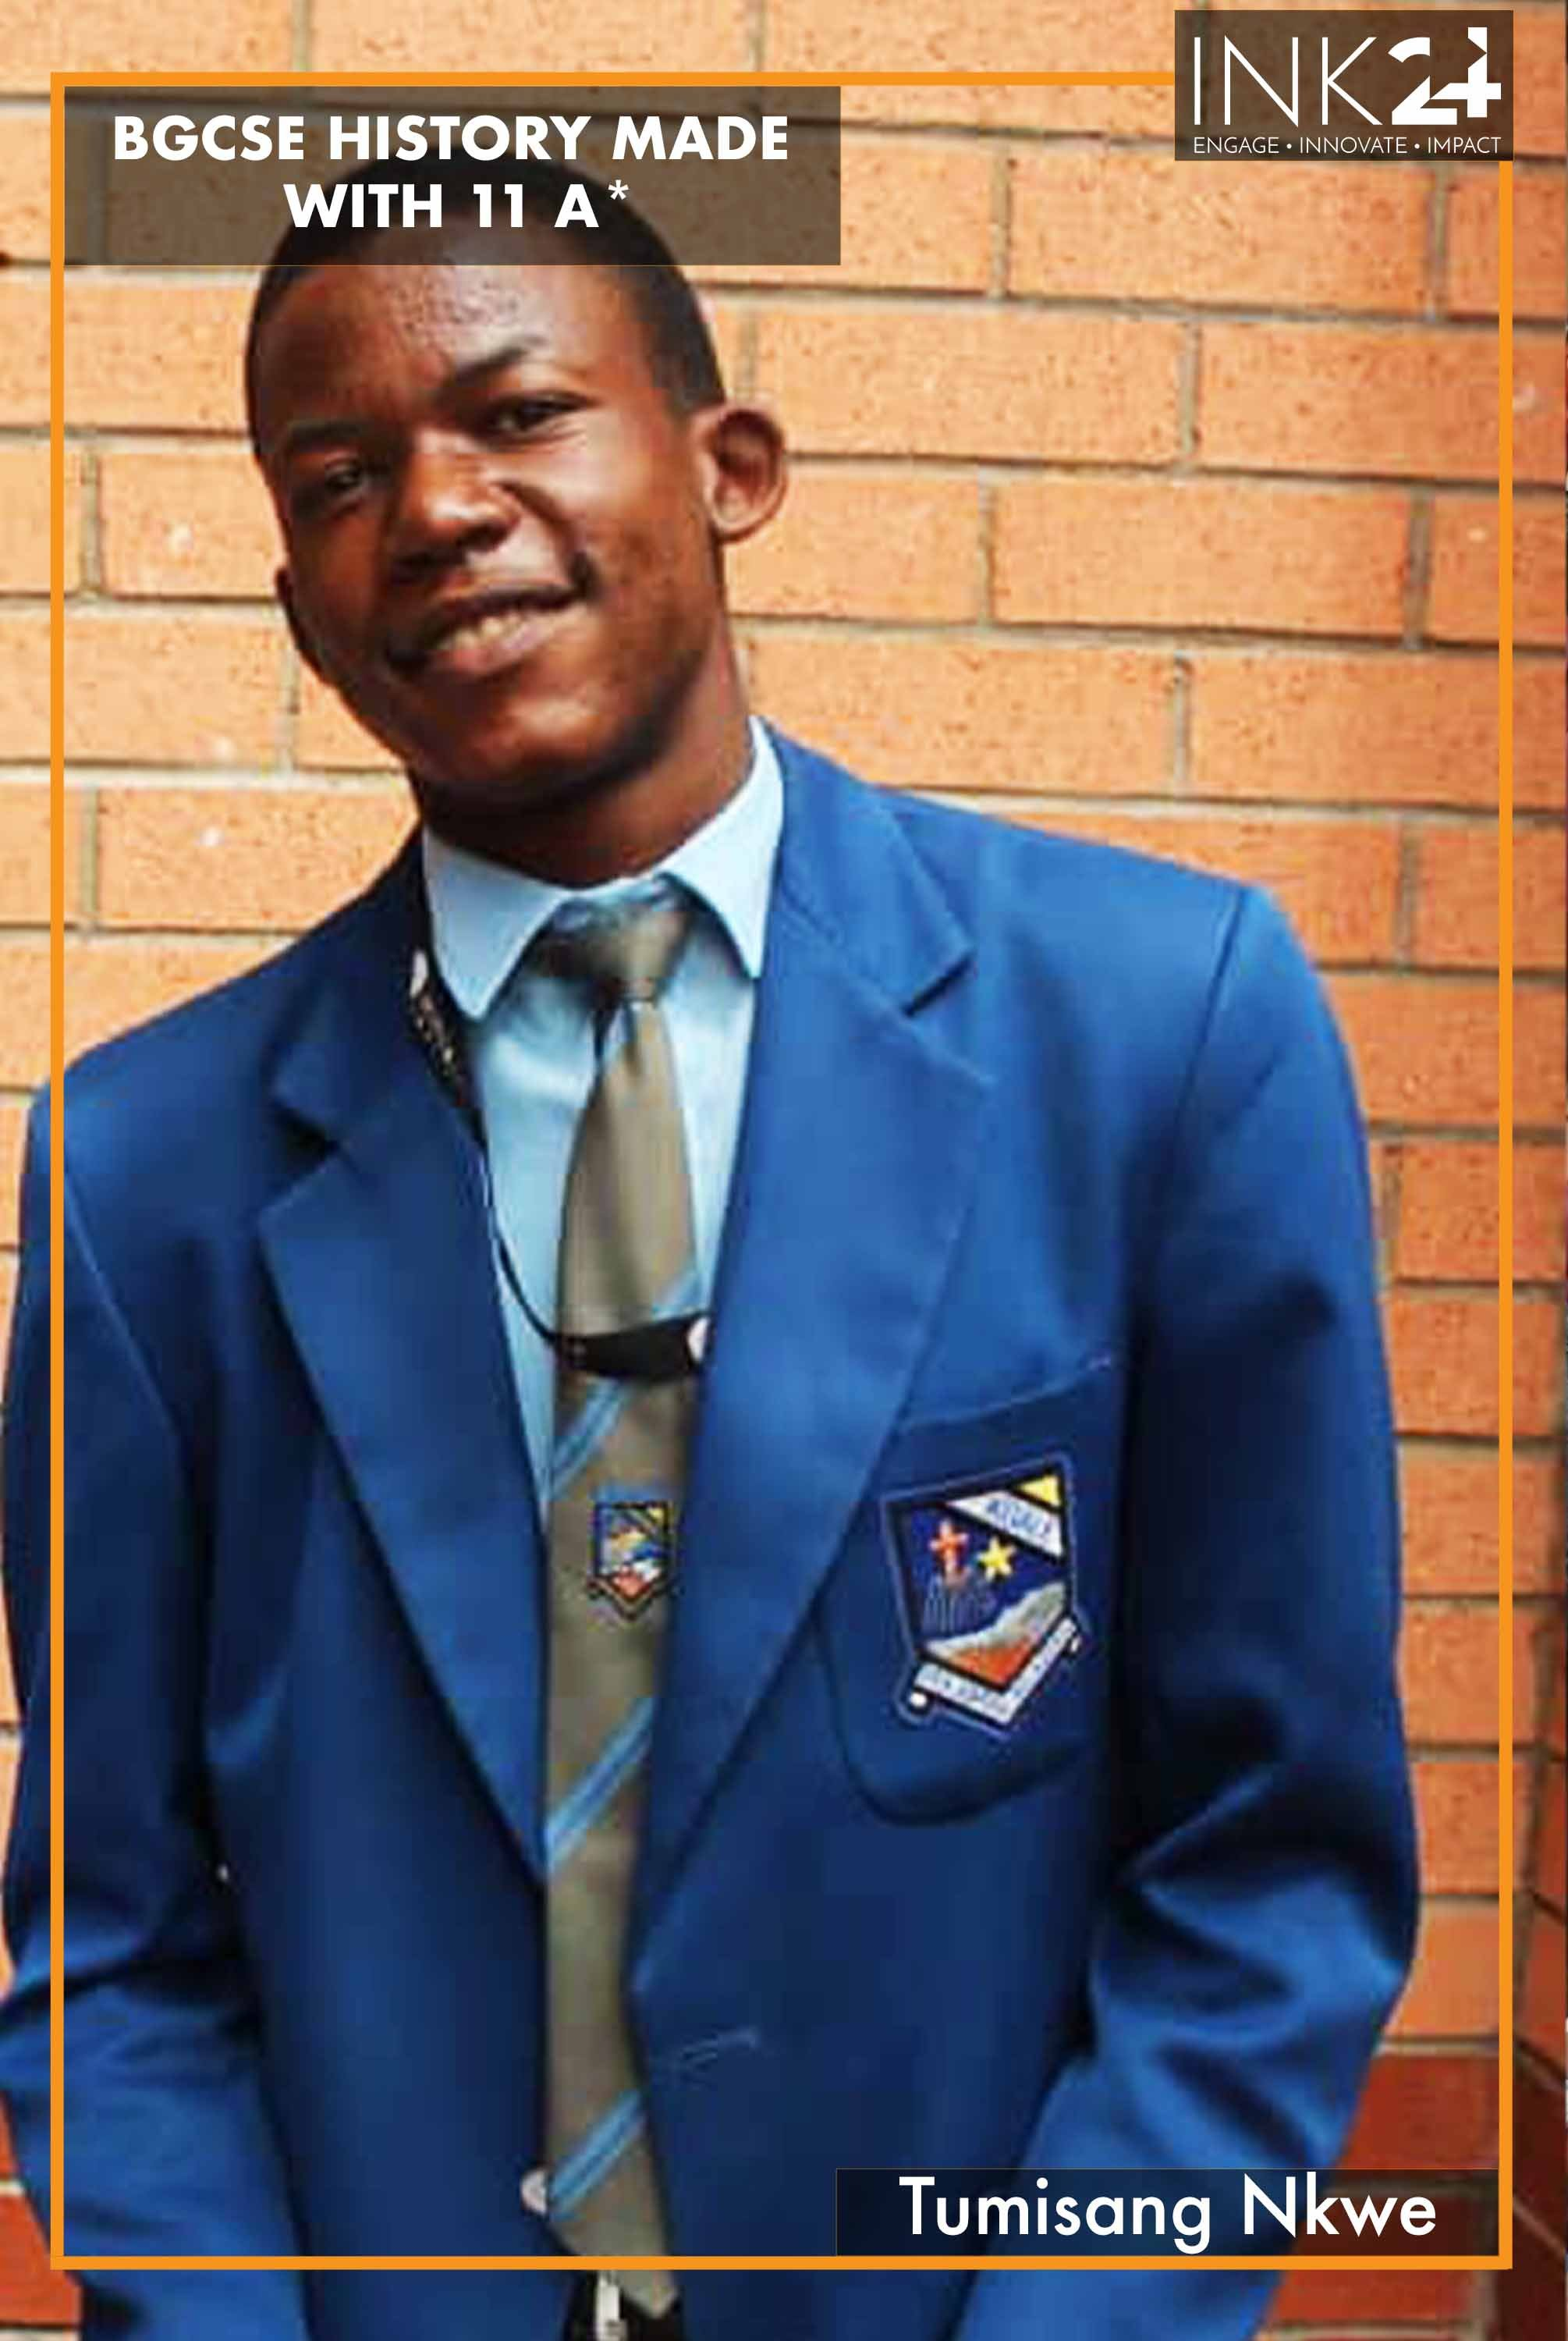 Tumisang Nkwe makes history by scooping 11 straight A* in BGCSE